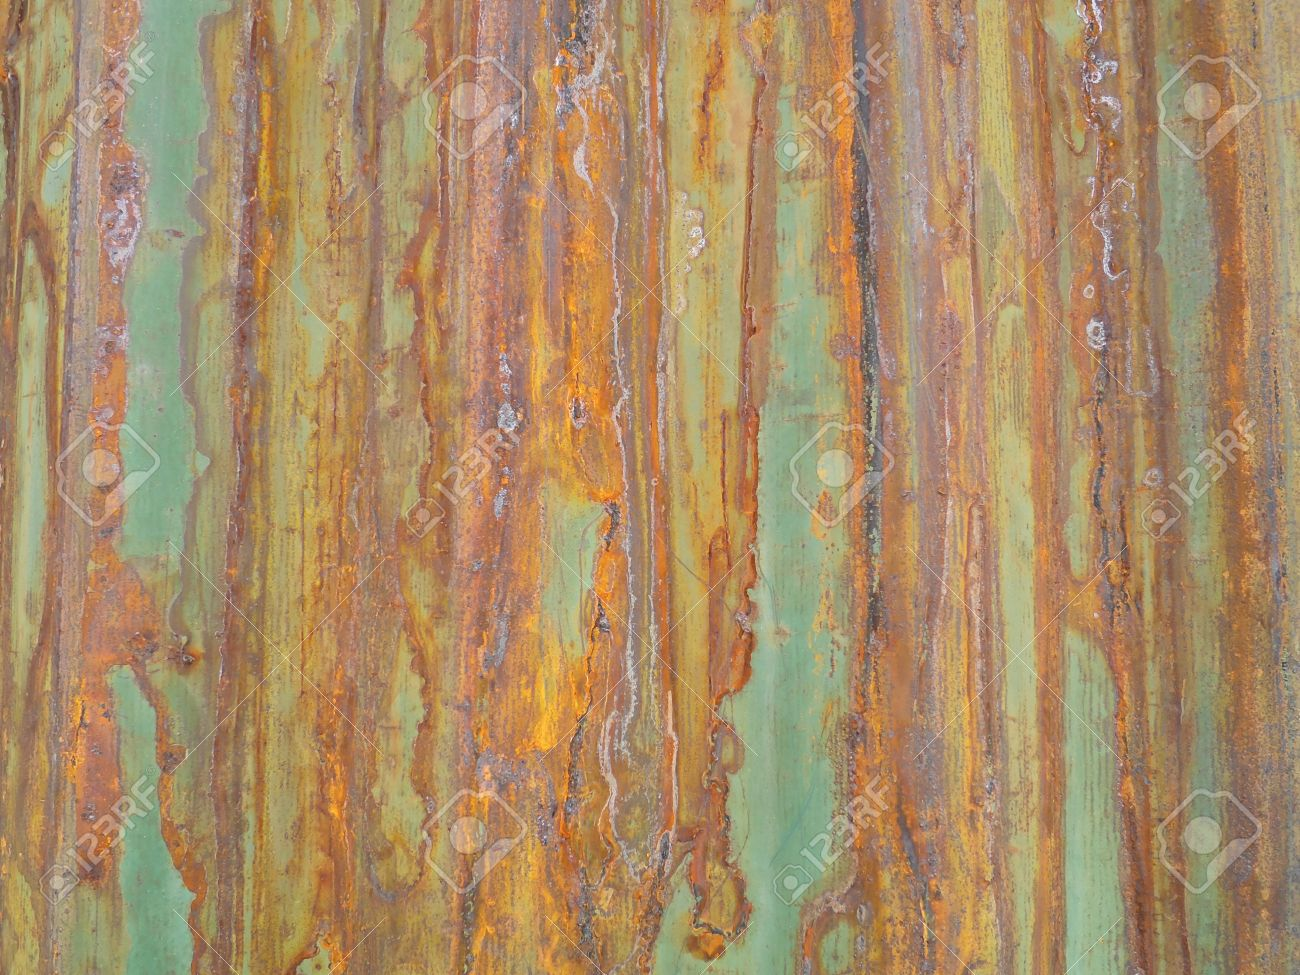 Rusty Green Painted Metal Wall With Cracked Paint Texture Color Stock Photo